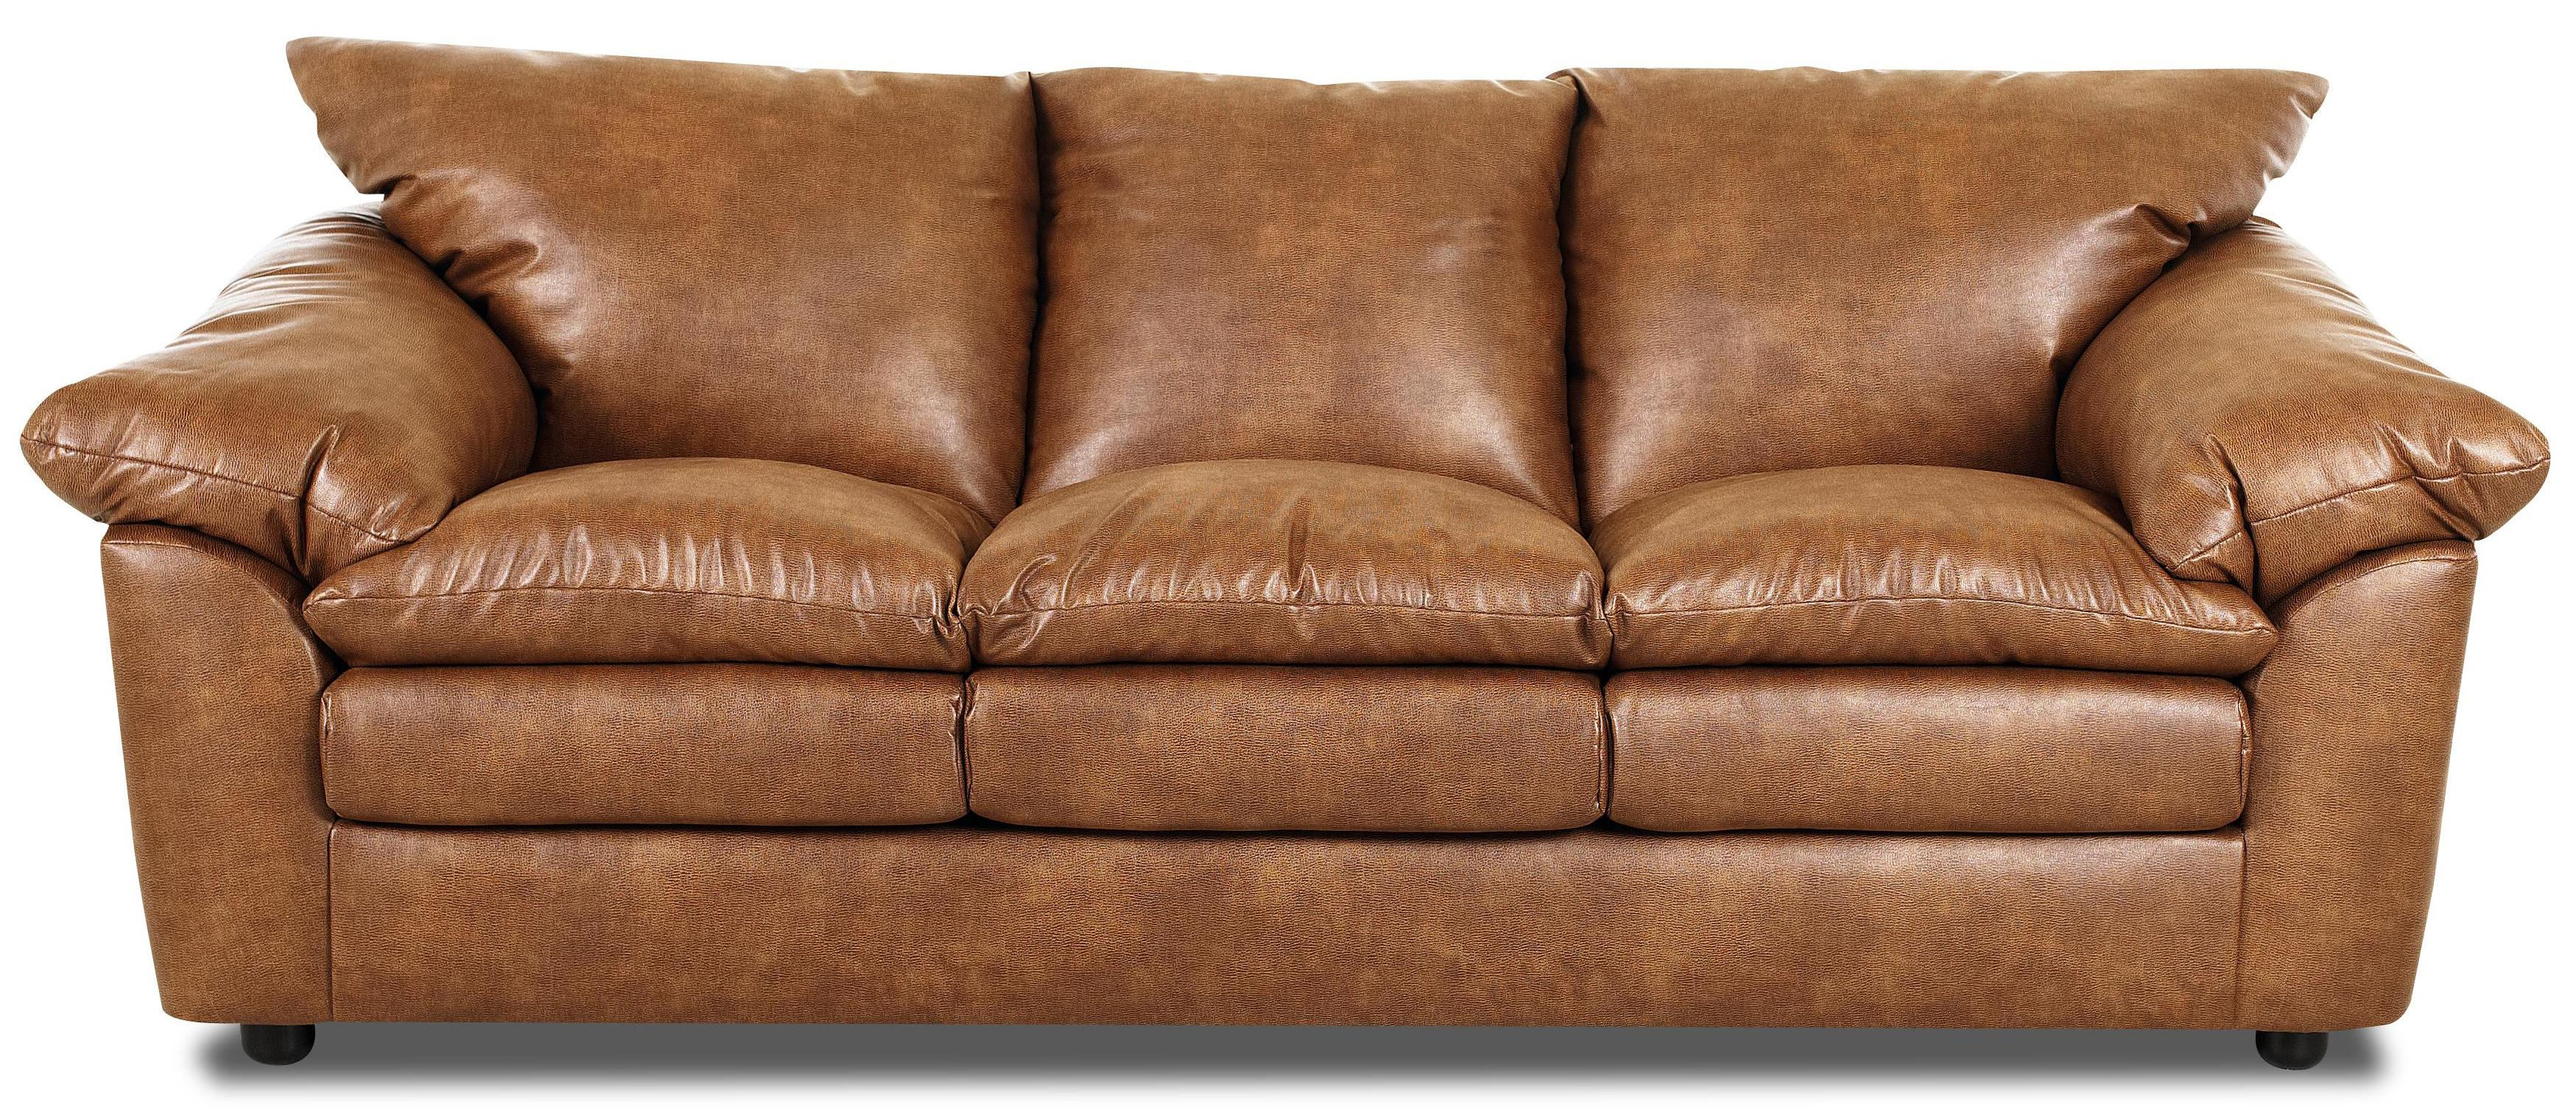 klaussner heights sofa klaussner jaxon three piece sectional